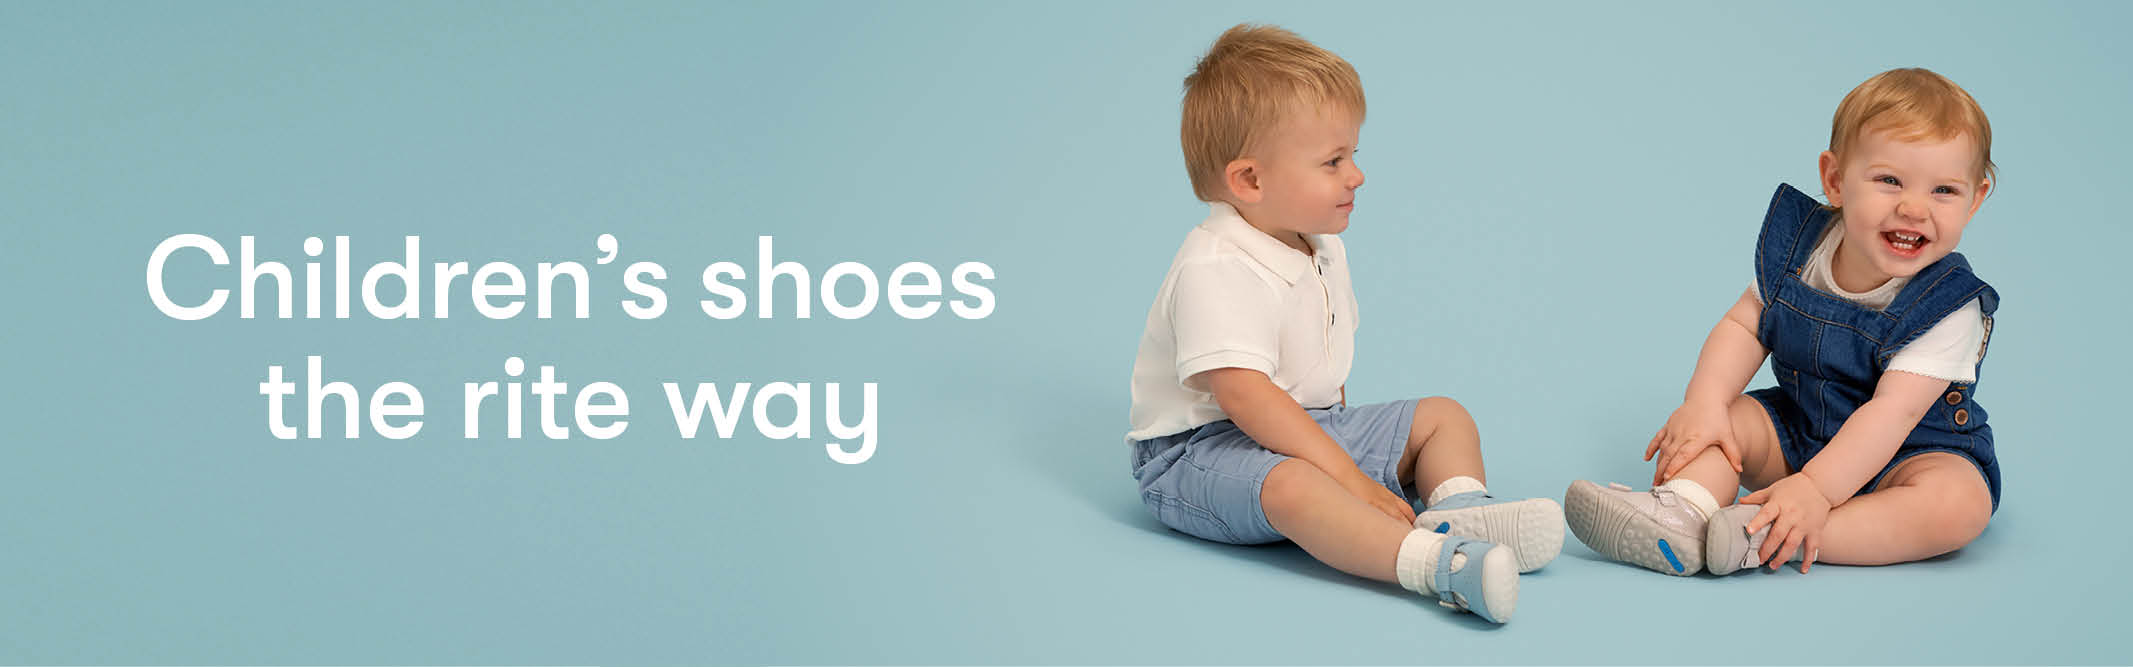 Childrens Shoes The Rite Way